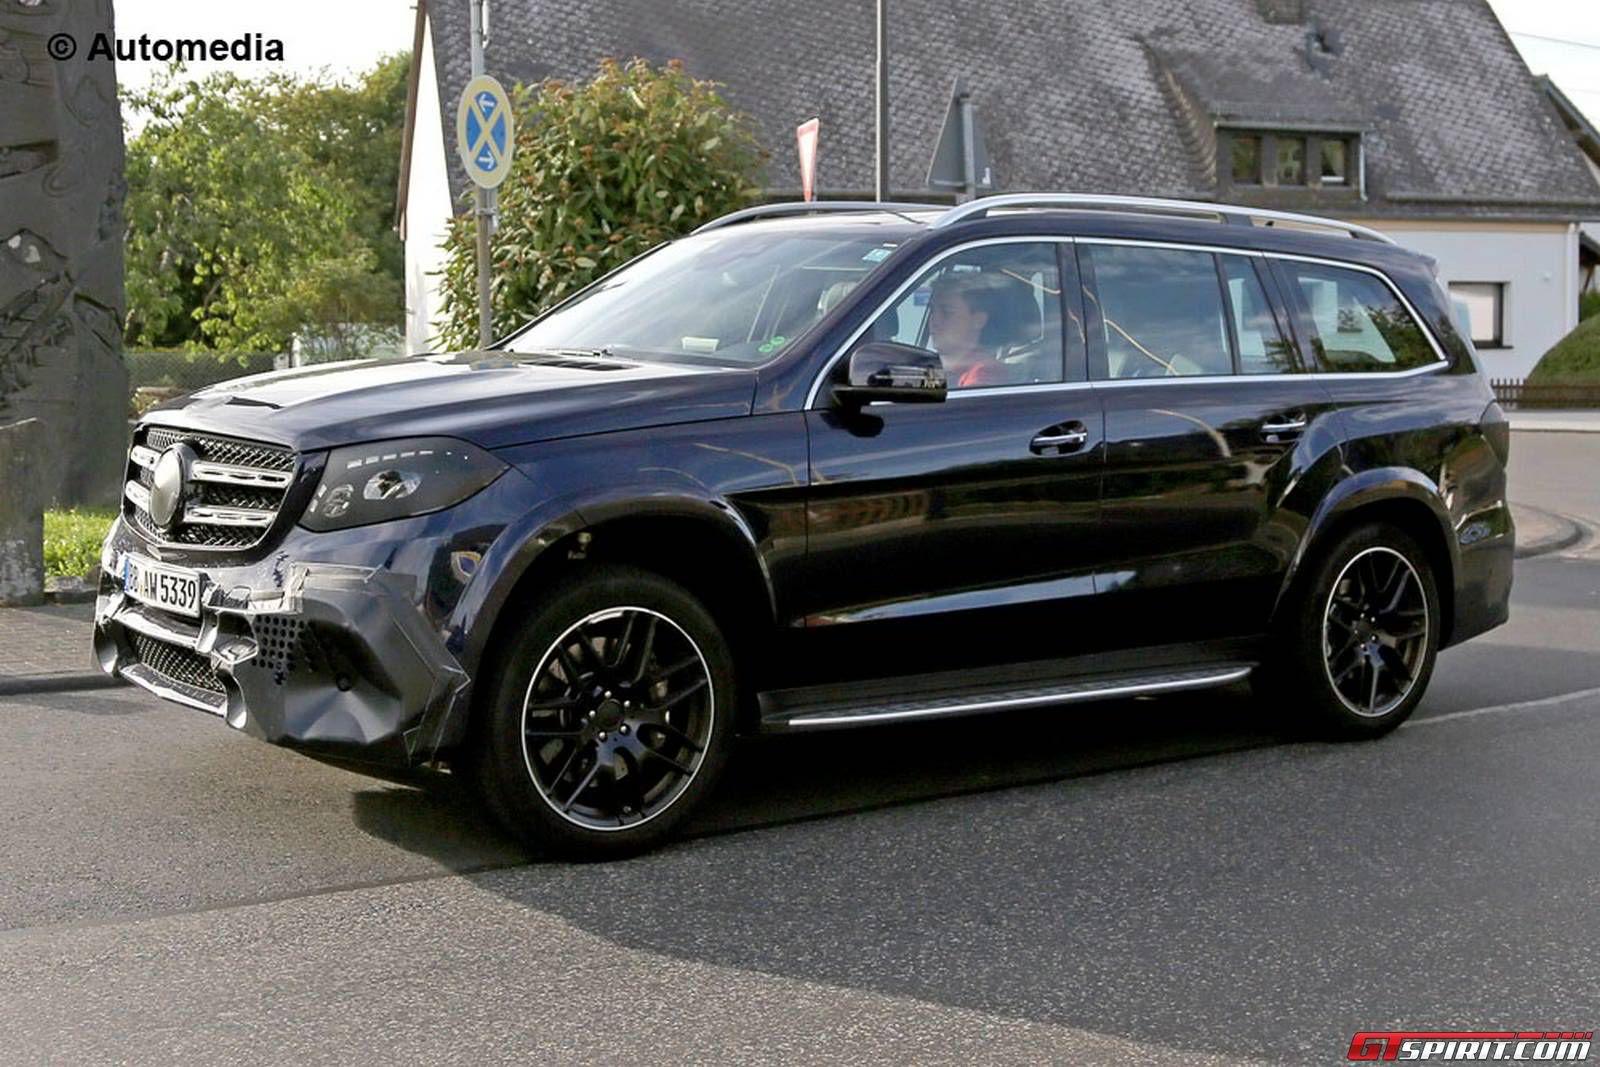 Mercedes-AMG GLS 63 Spied While Being Tested